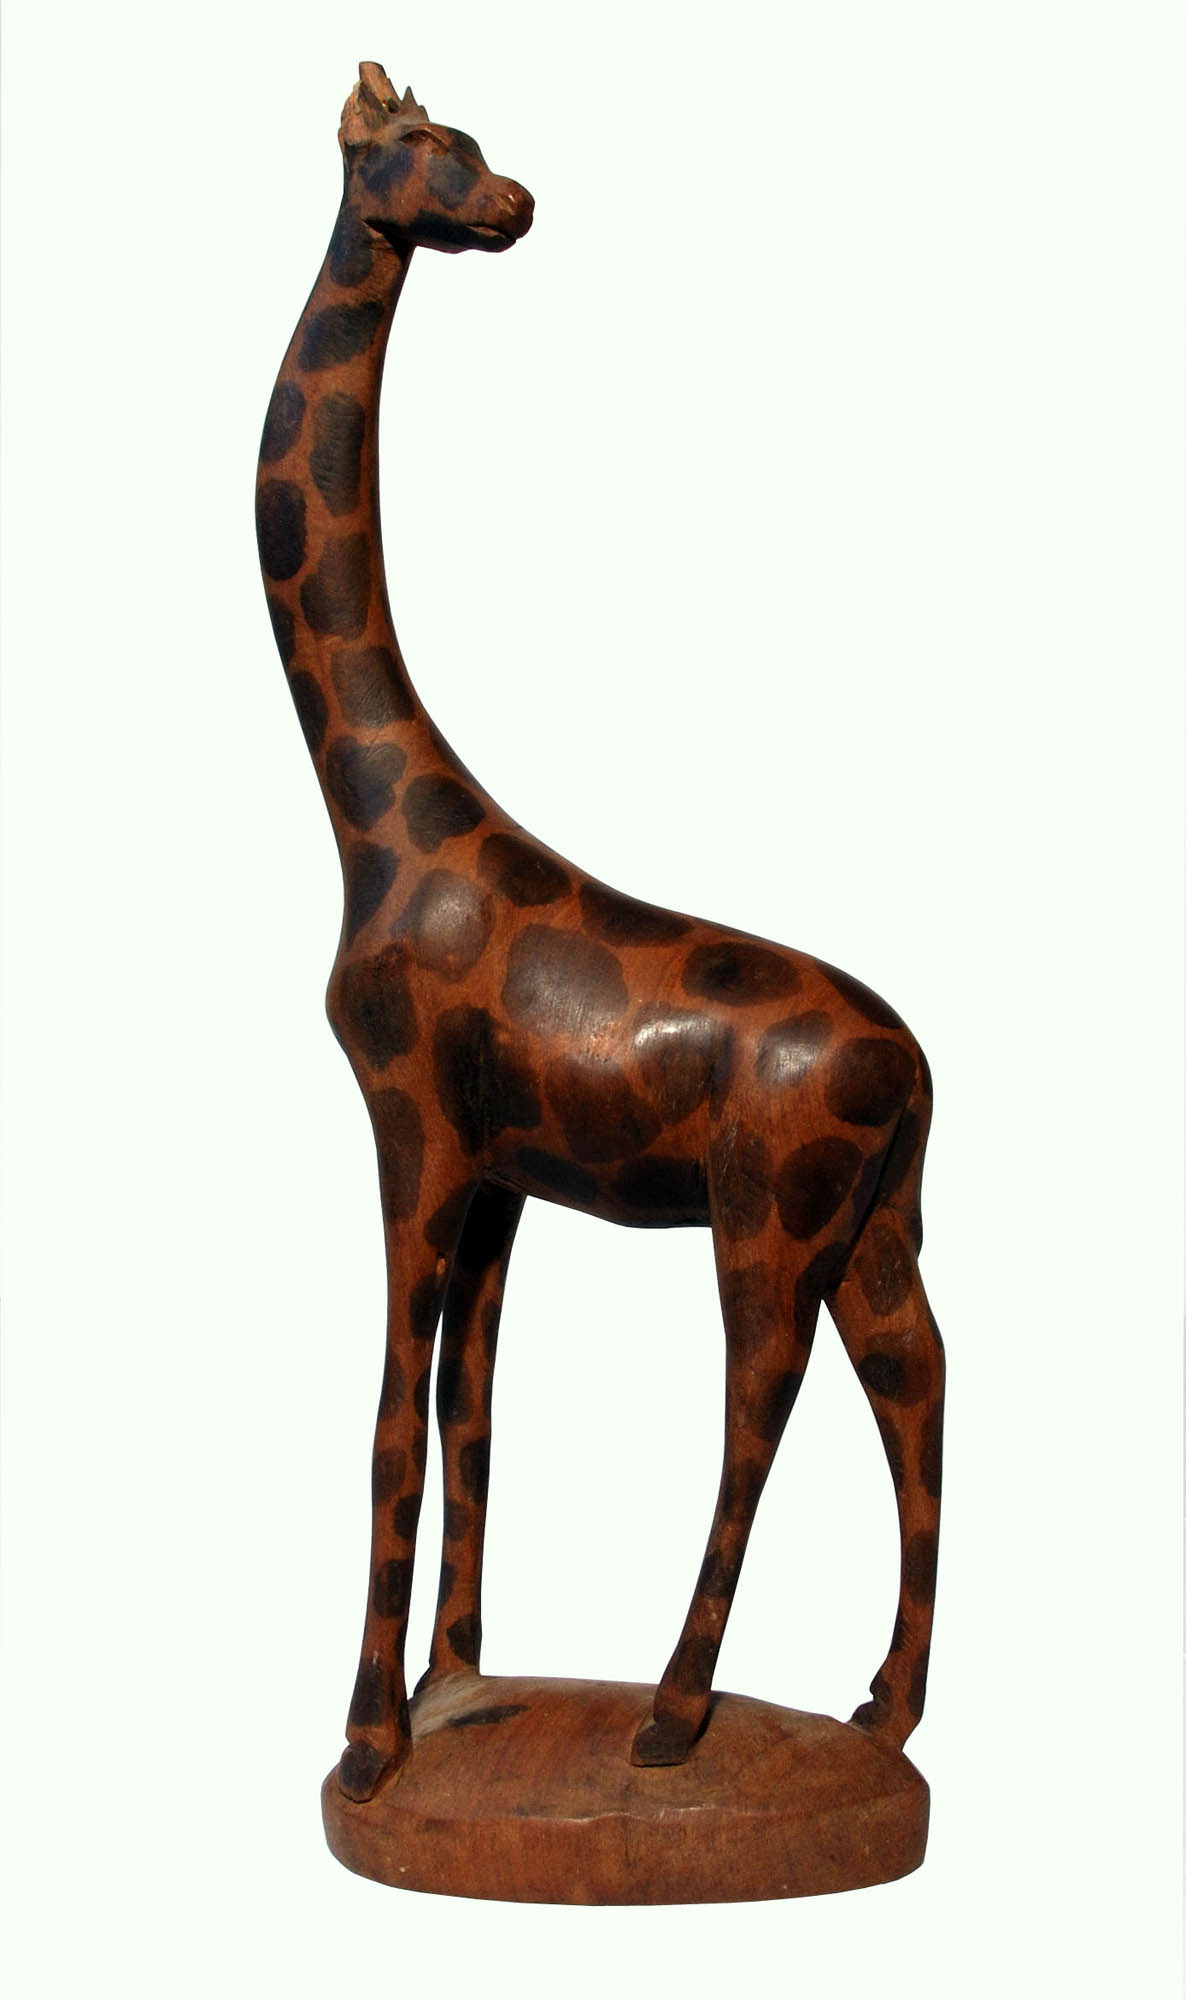 Wooden giraffe carving